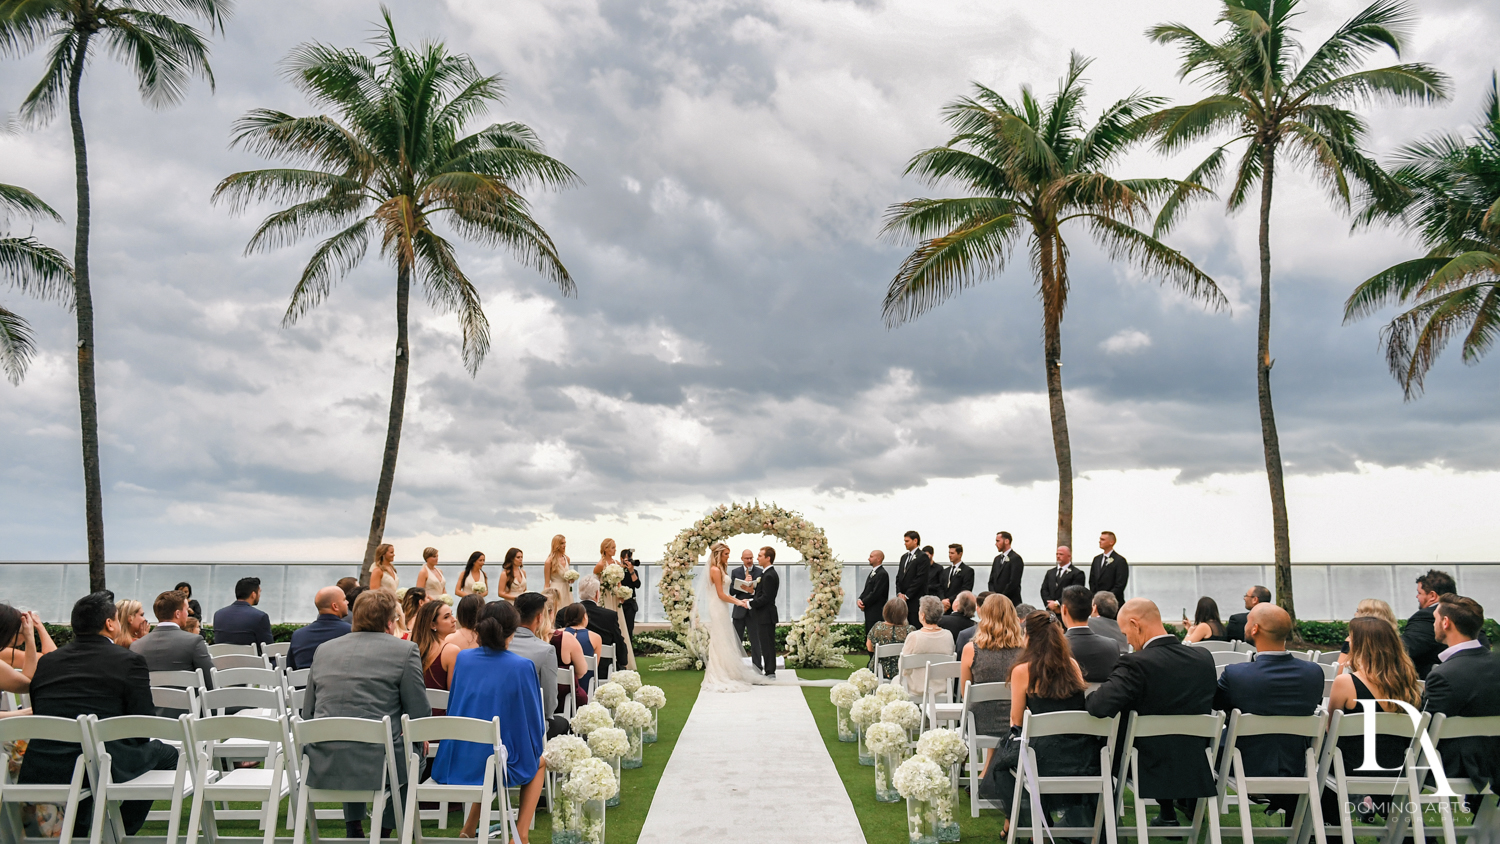 ocean side ceremony at Extravagant Wedding at The Breakers Palm Beach by Domino Arts Photography